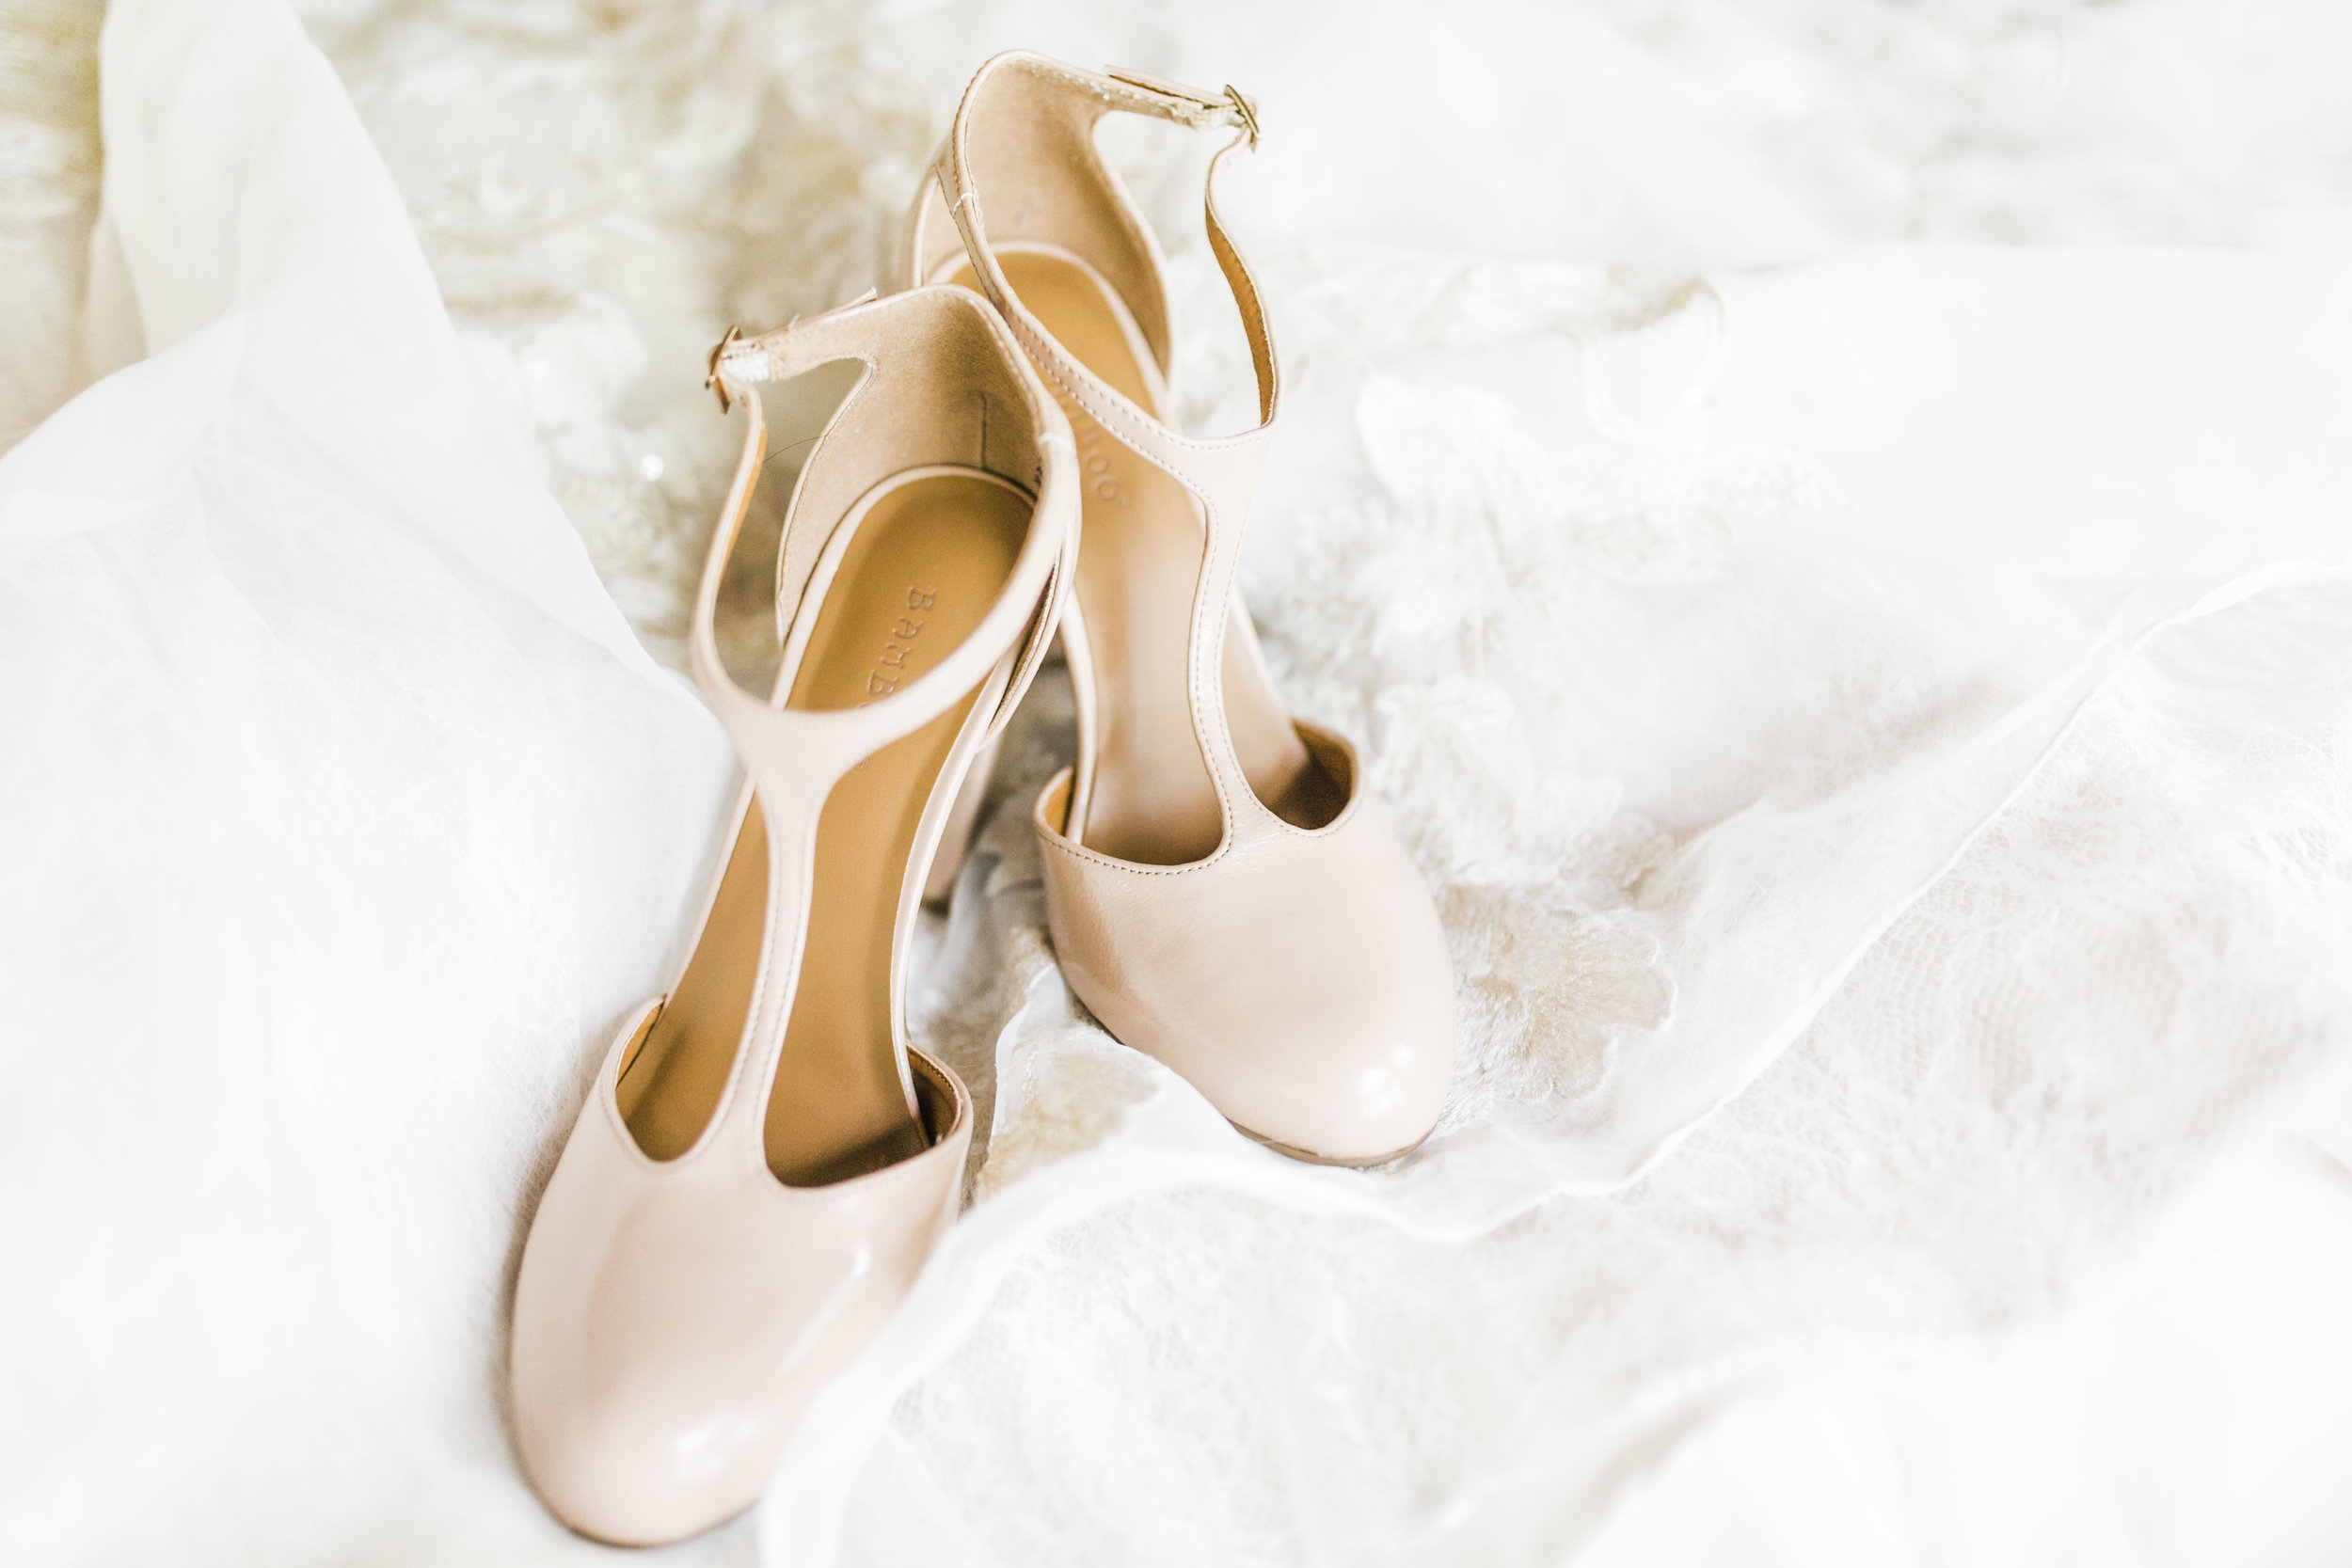 knoxville wedding photographer shoes detail shots